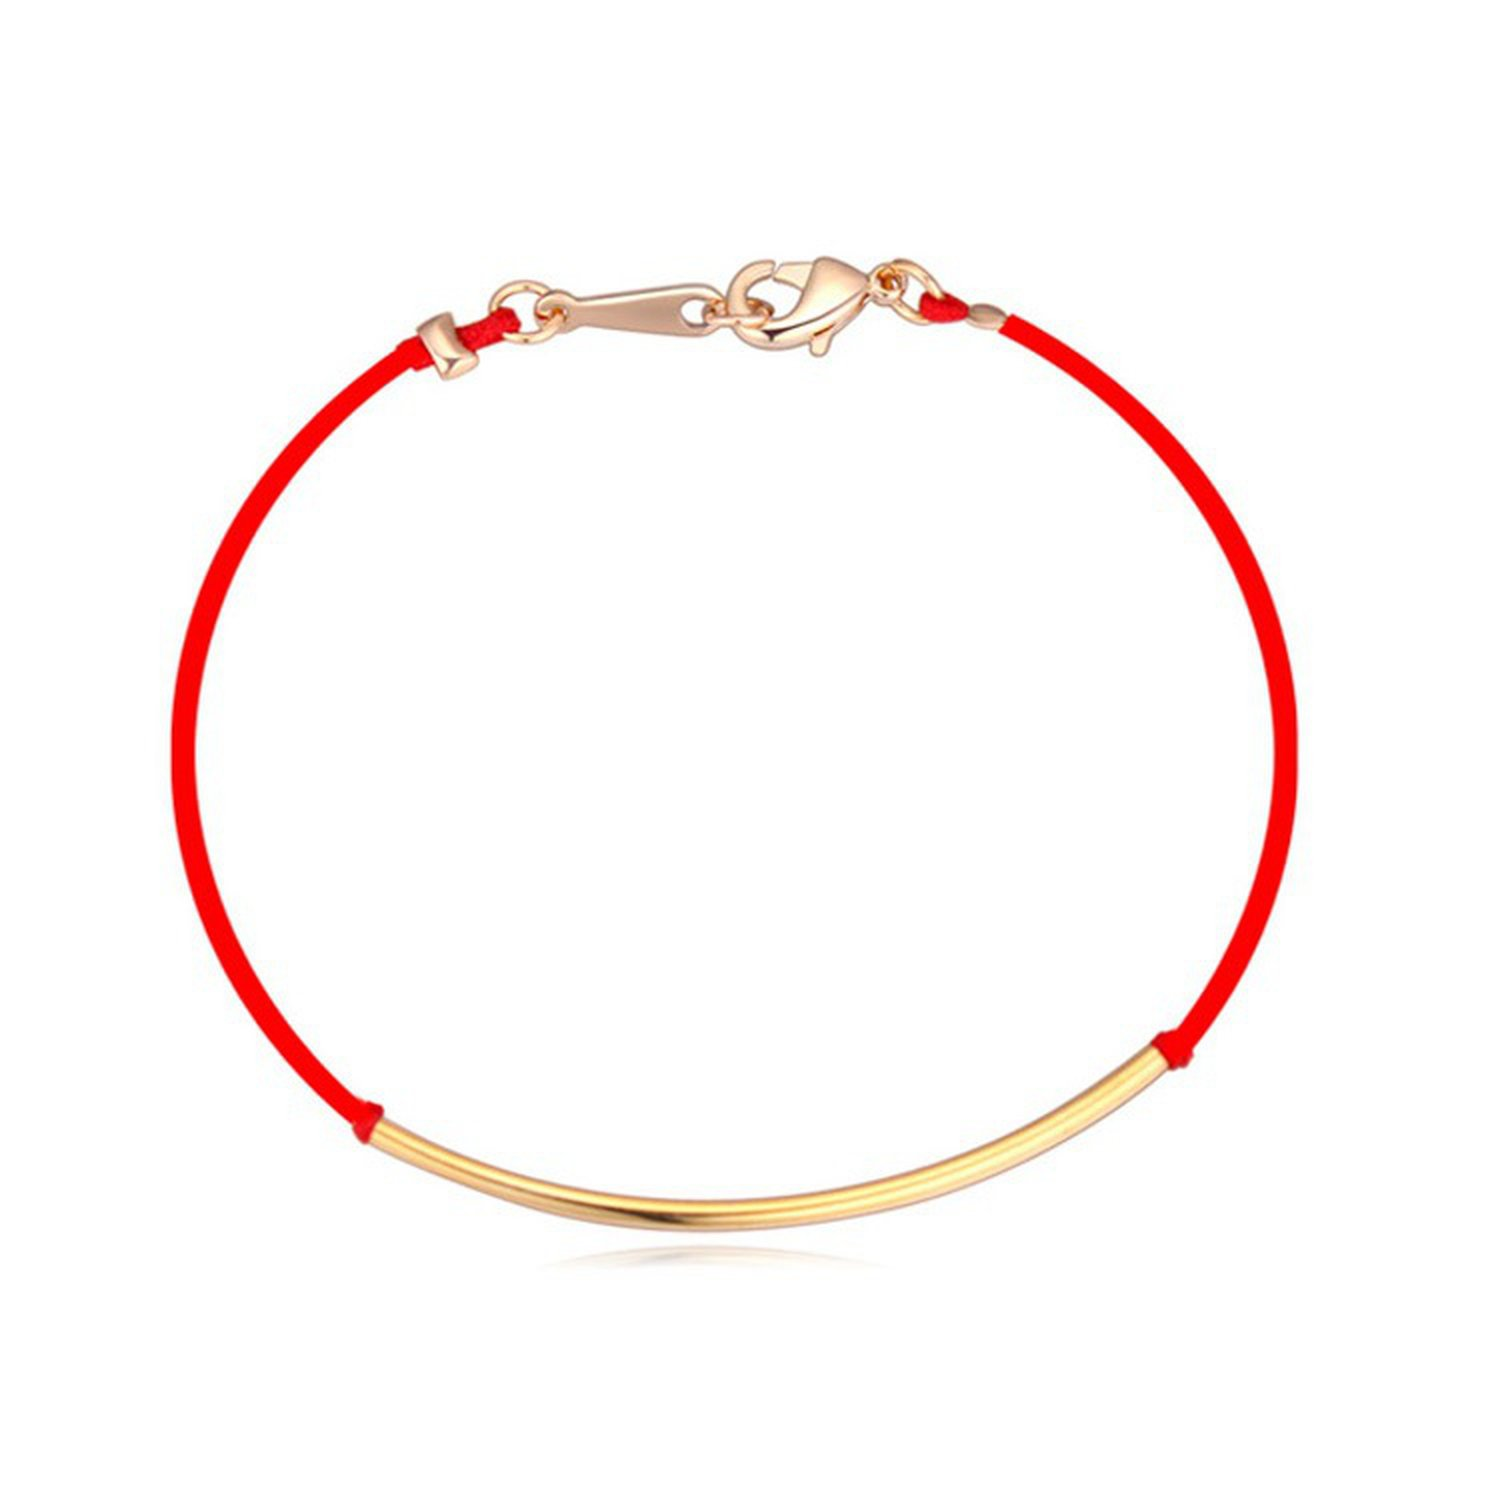 Flower-Bud born red rope braided bracelet high-end gold plated fine jewelry past and present Korean jewelry,Rose Gold by Flower-Bud (Image #3)